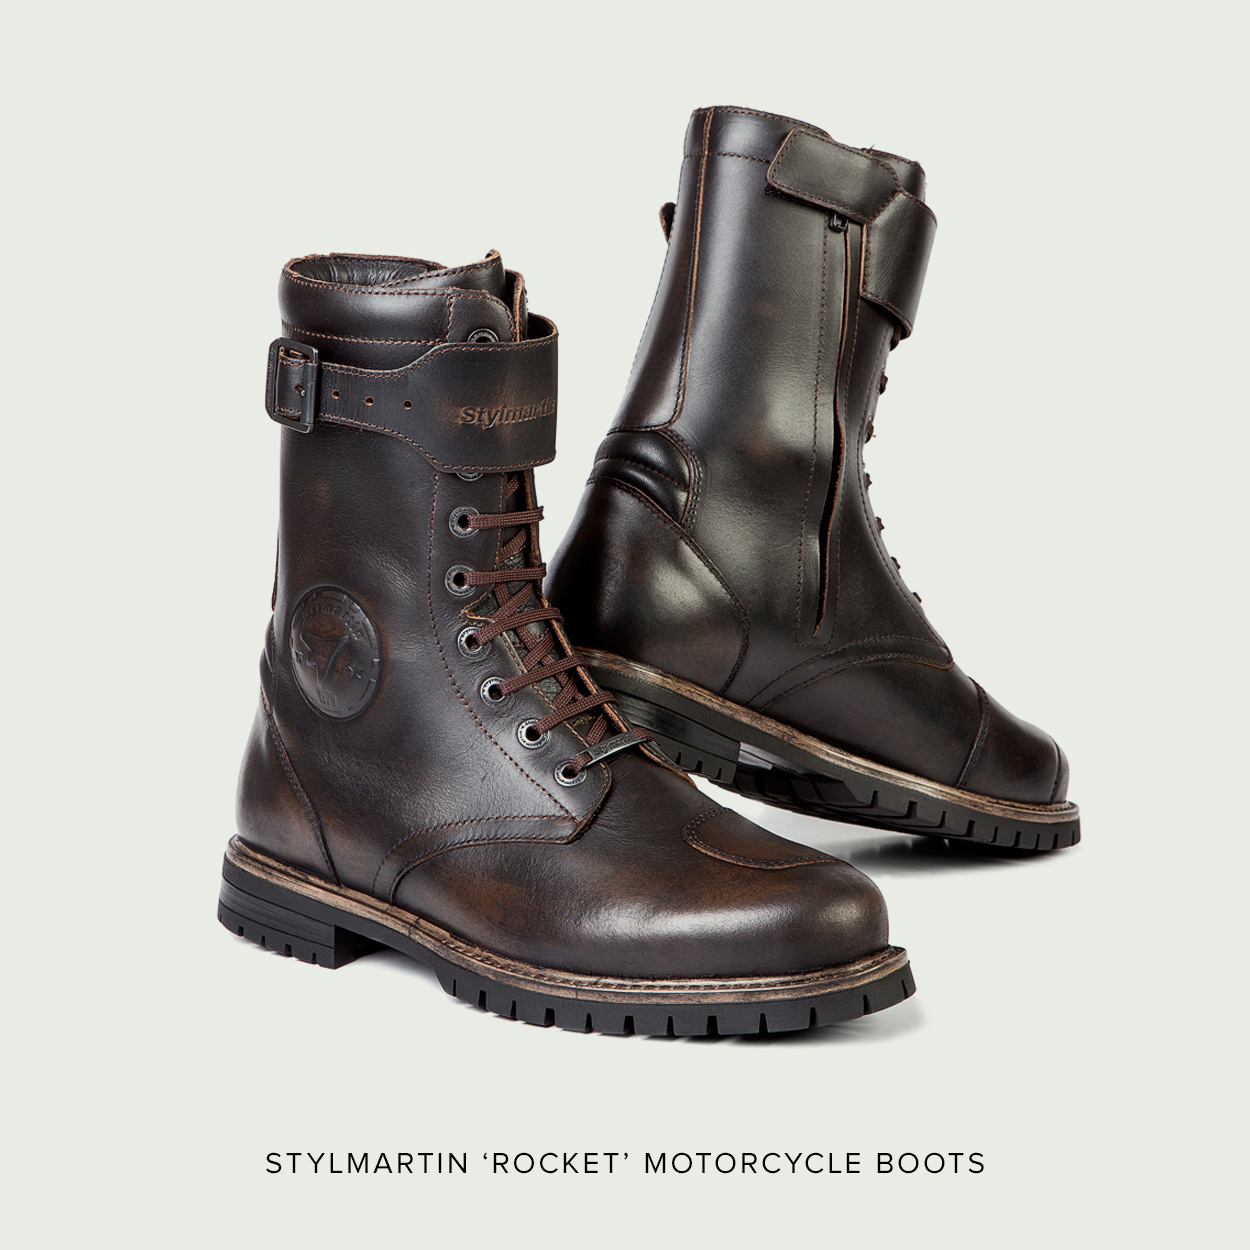 Stylmartin Rocket Motorcycle Boots Perfect For Cafe